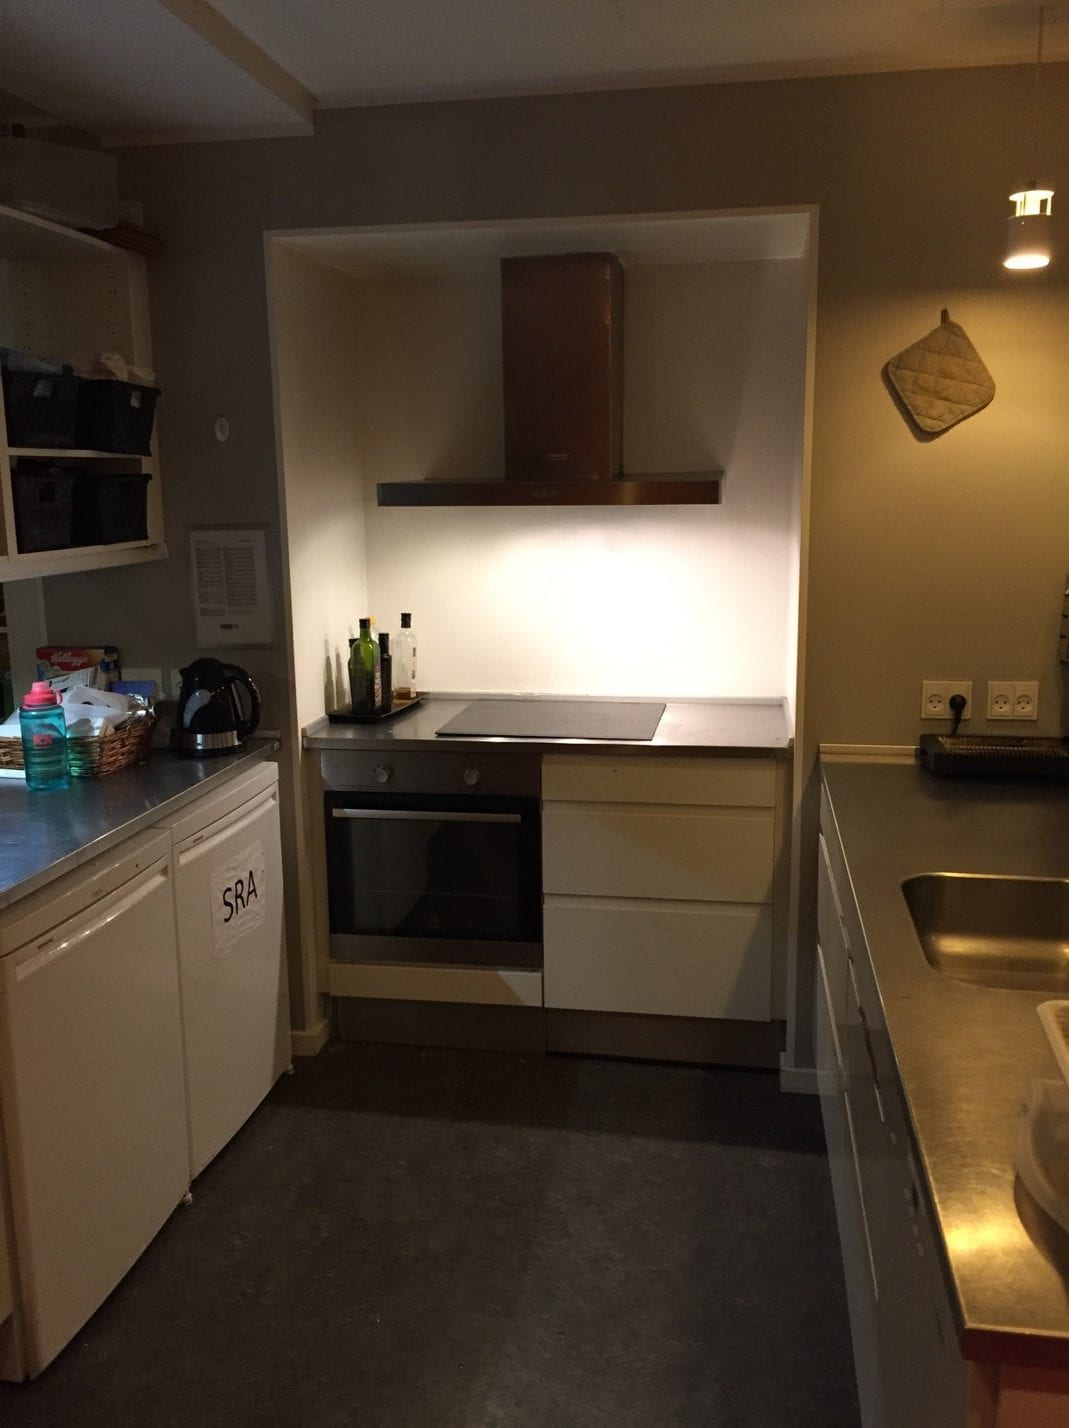 A dimly lit kitchen with white cupboards